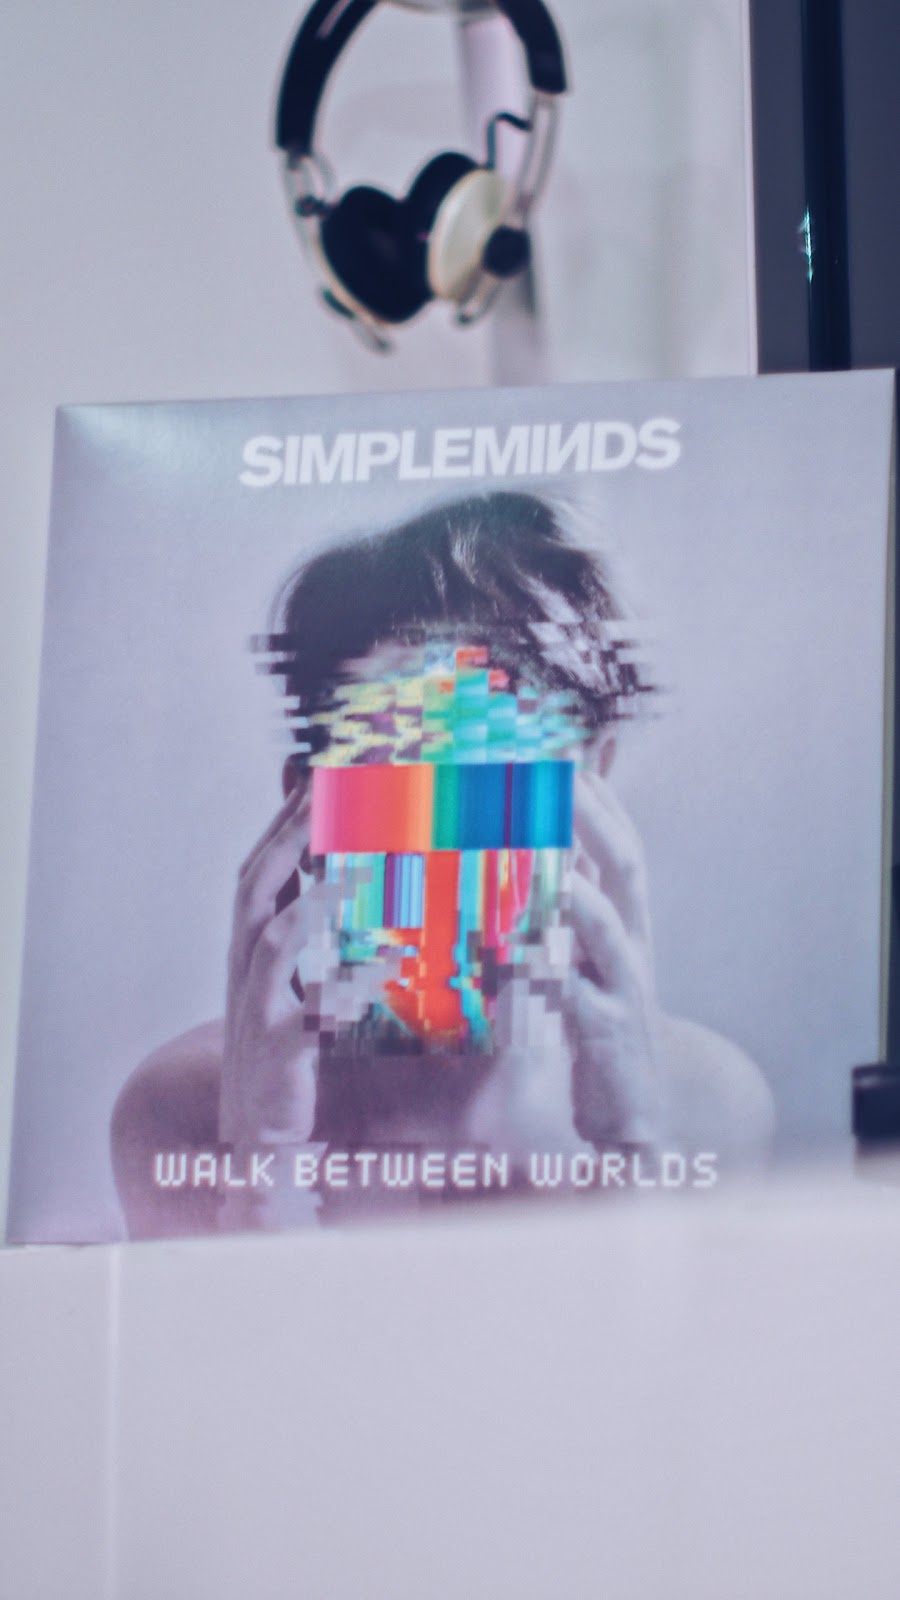 Simple Minds - Walk Between Worlds | Album Tipp und Review